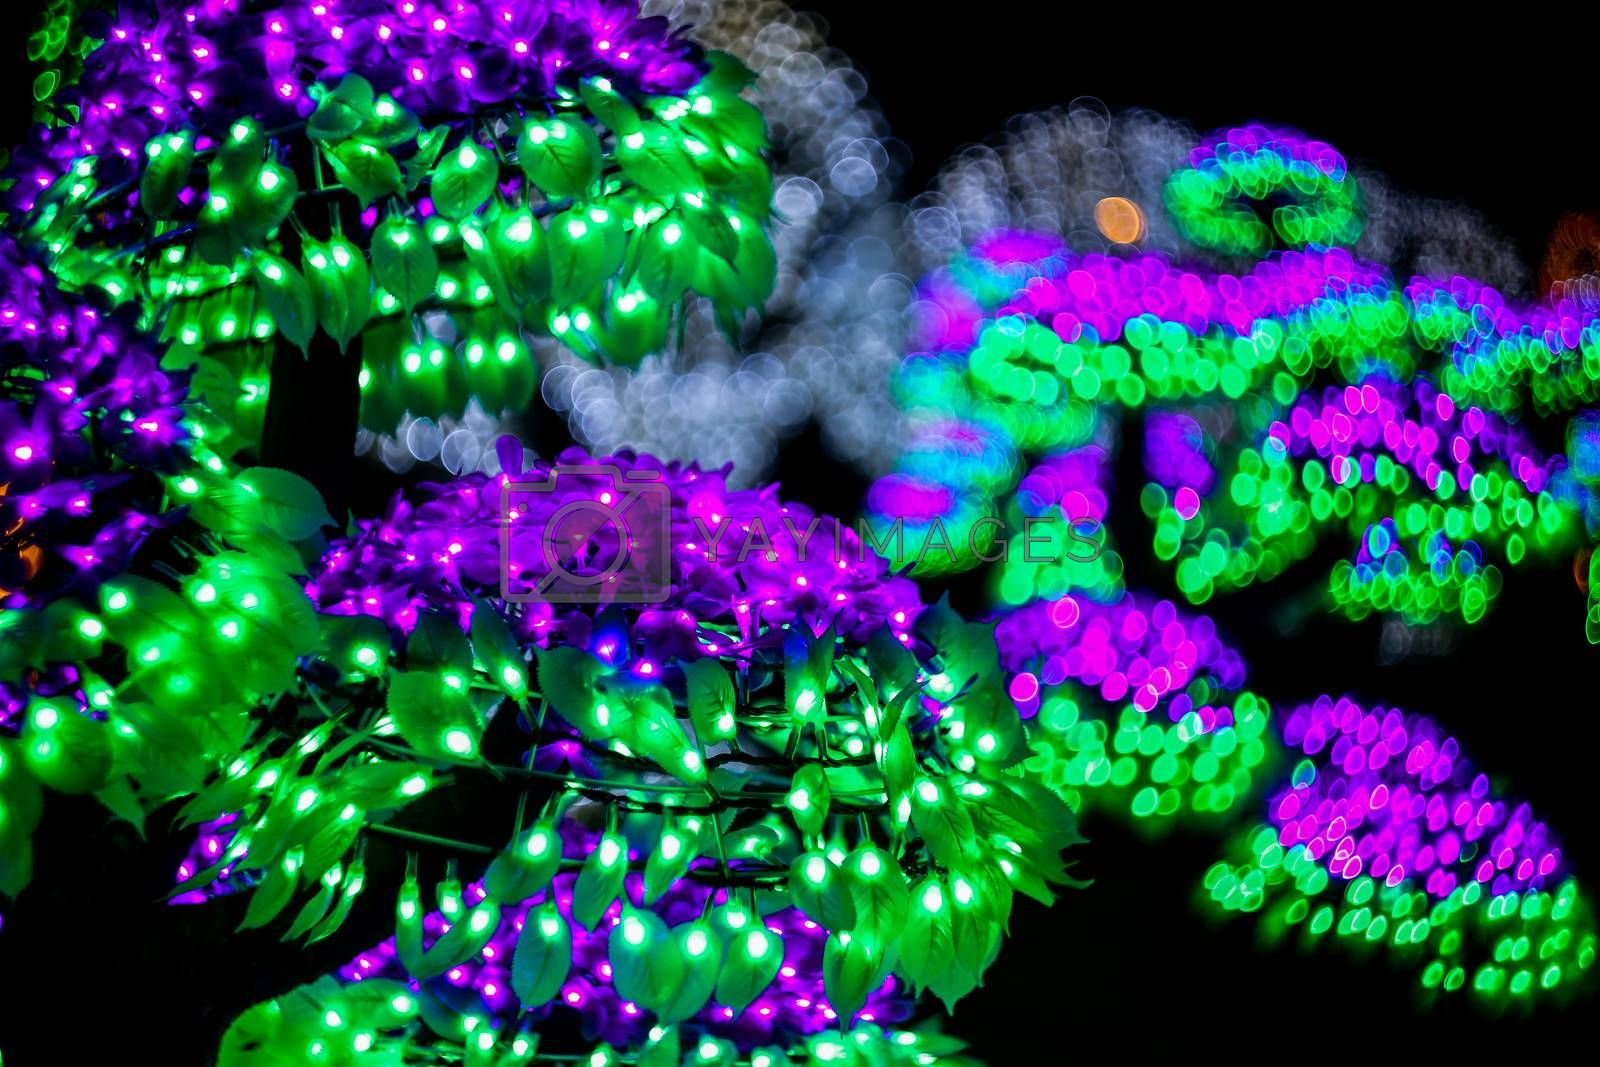 Abstract background with bubble bokeh defocused lights. Majestic tree of lights. Fantastic forest. Copy space.